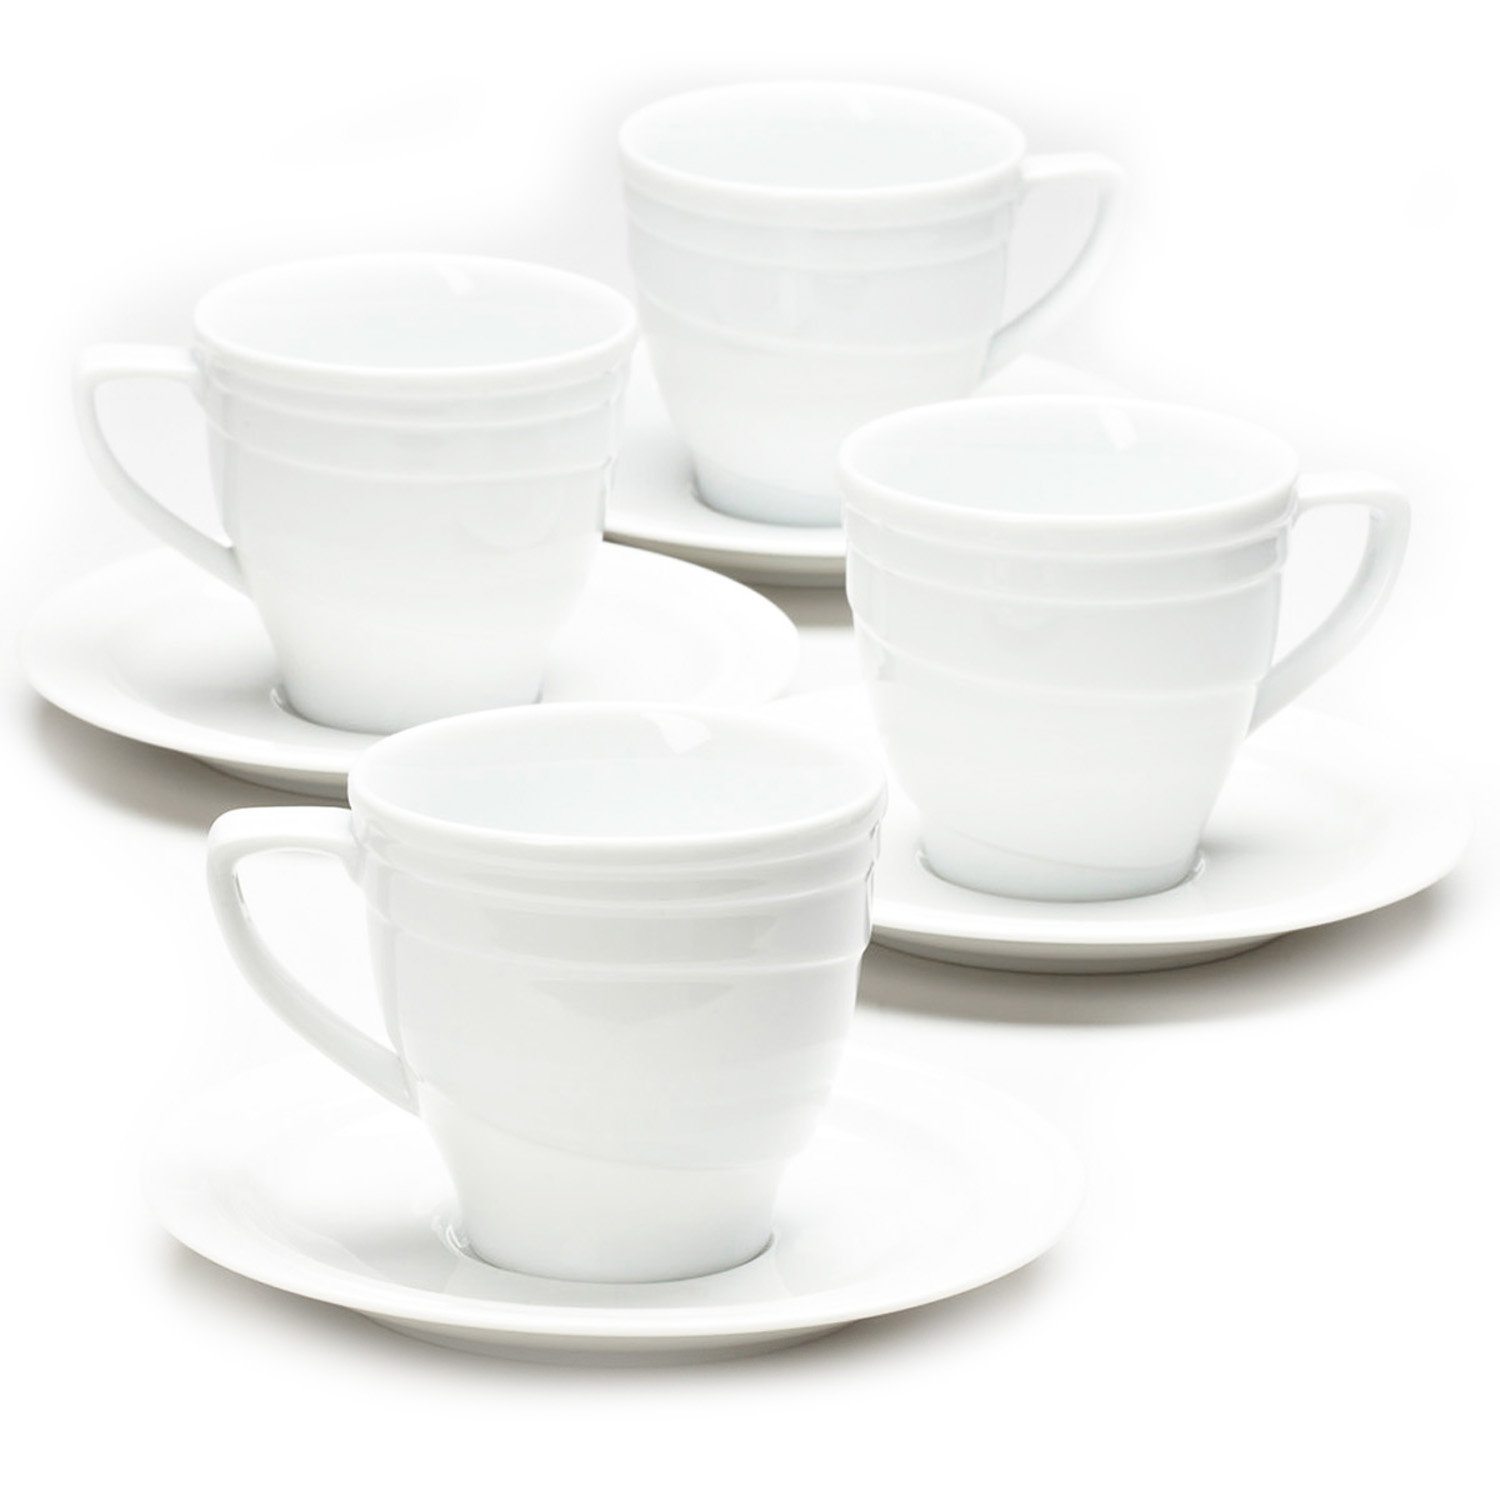 Elan 4pc tea cup and saucers PartNumber: 02479651000P KsnValue: 7273581 MfgPartNumber: 2214909